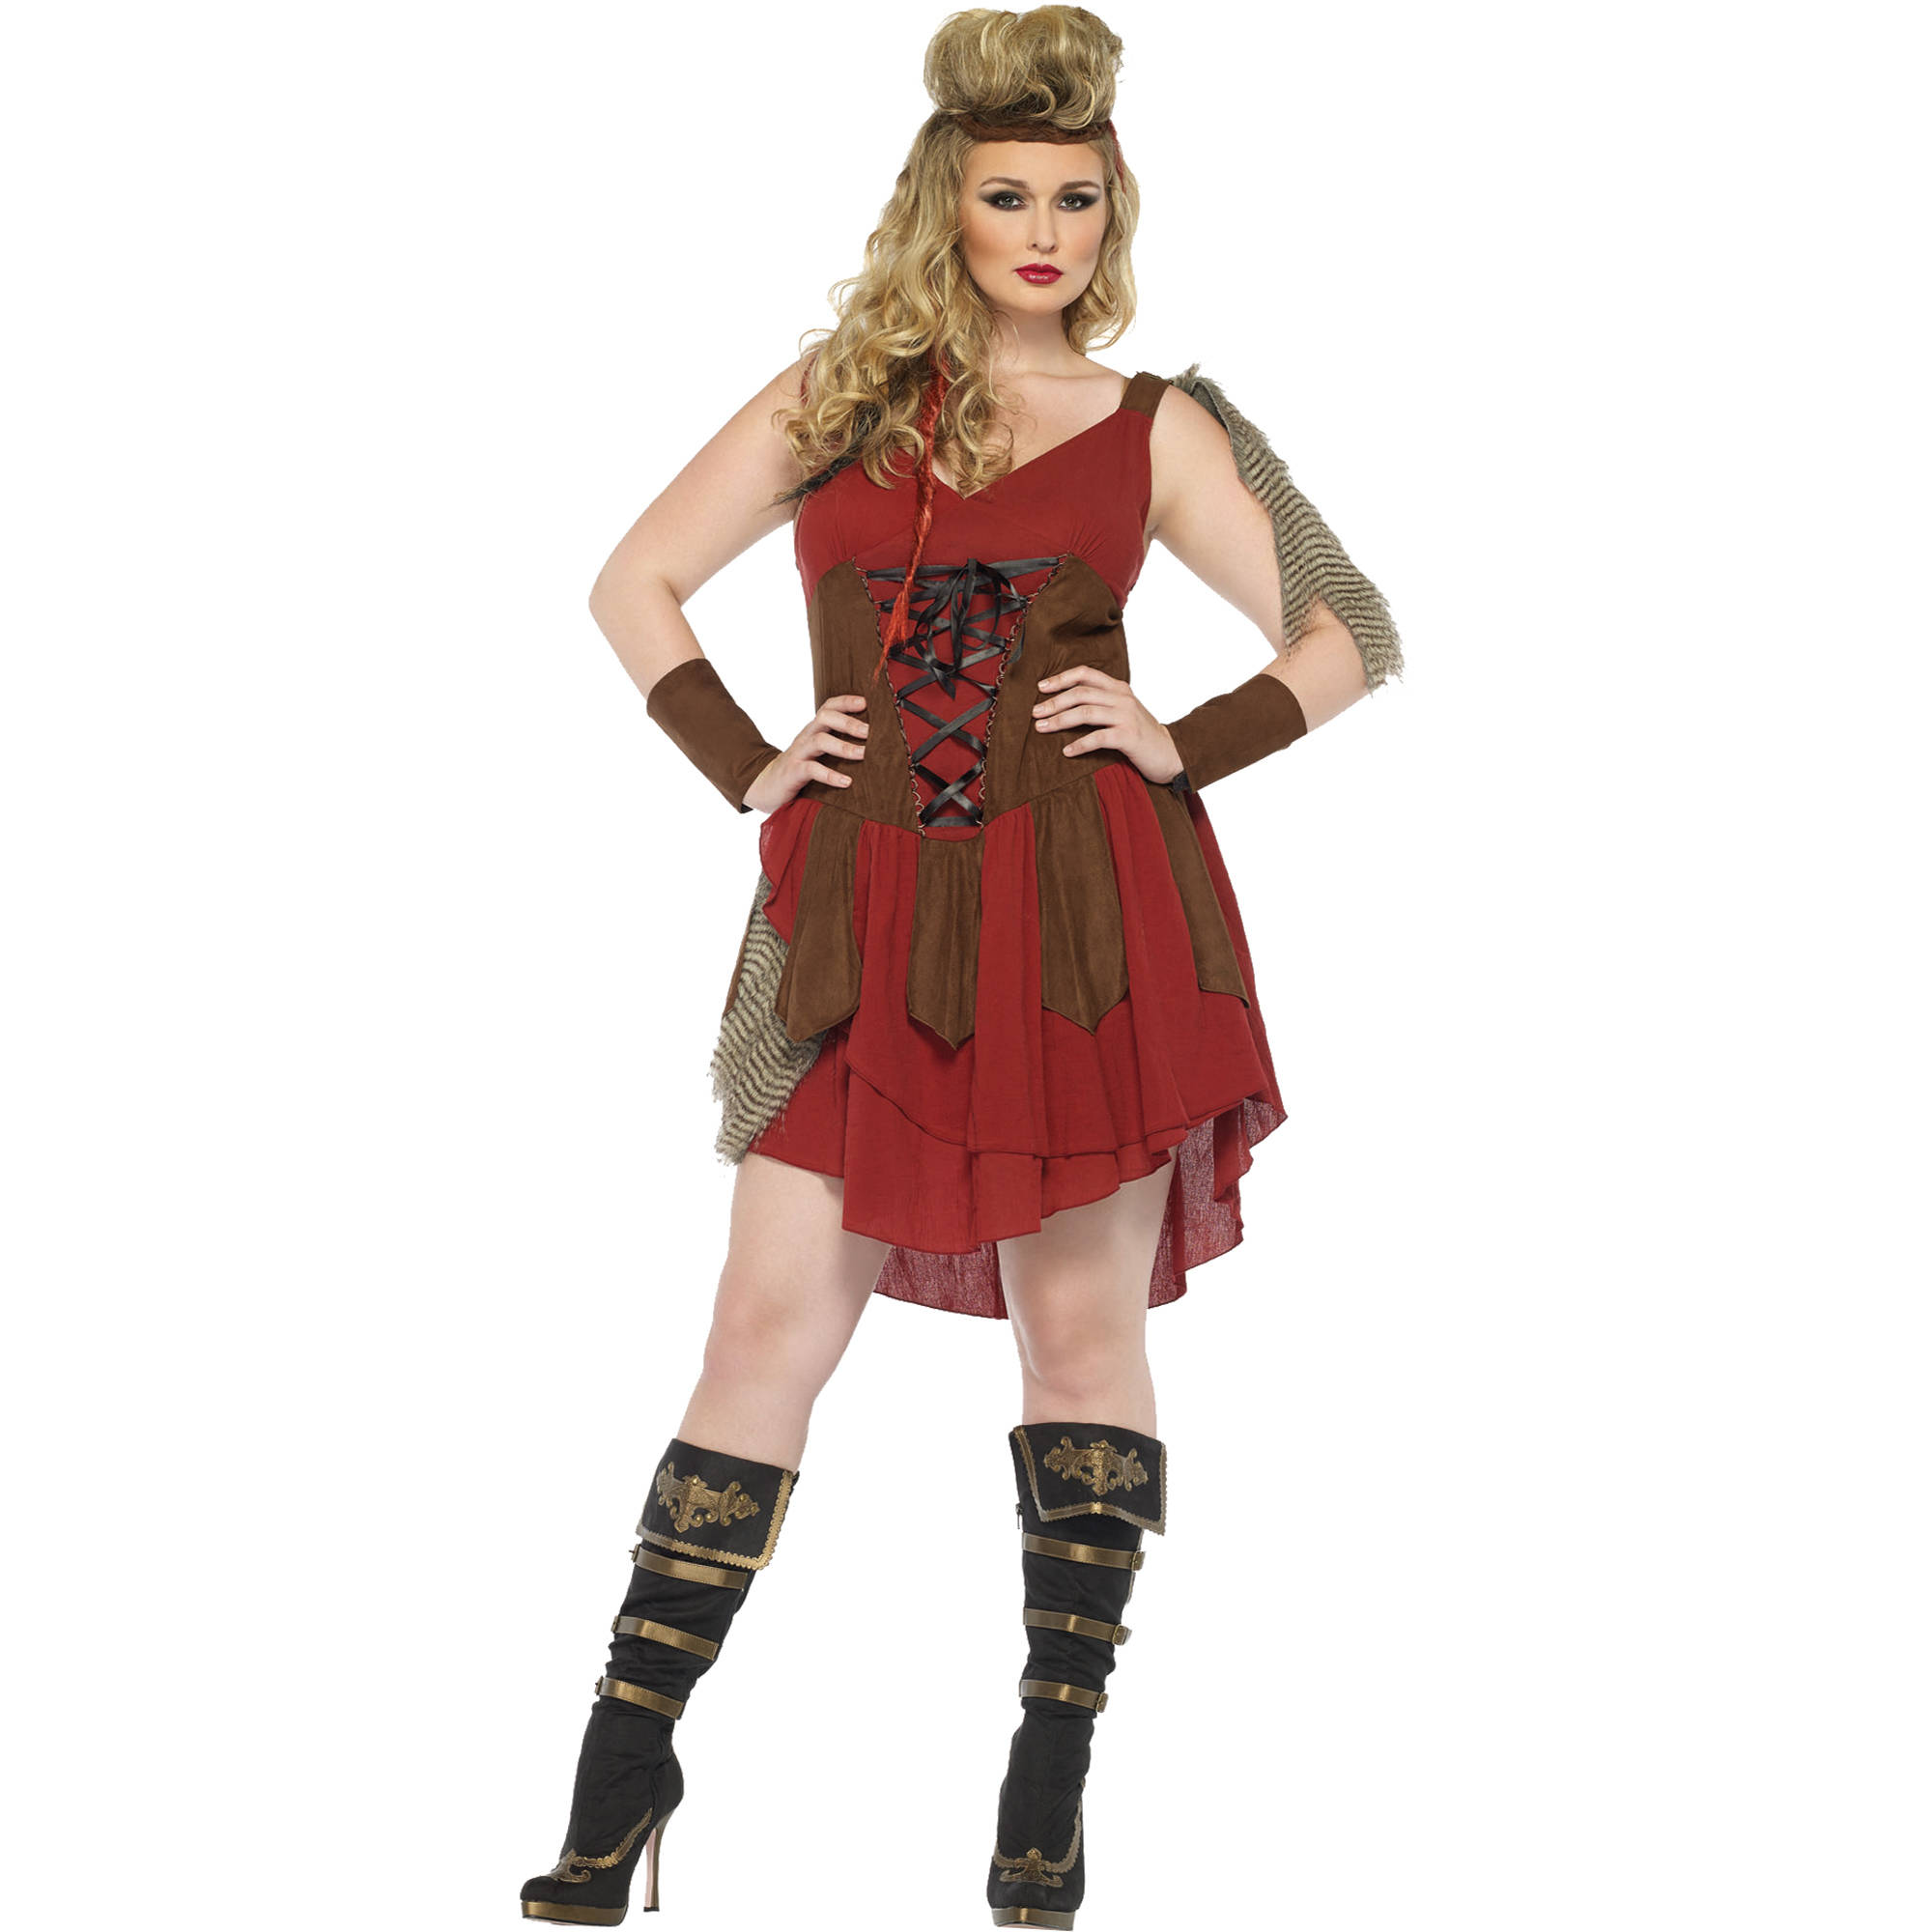 Deadly Huntress Women's Adult Halloween Costume